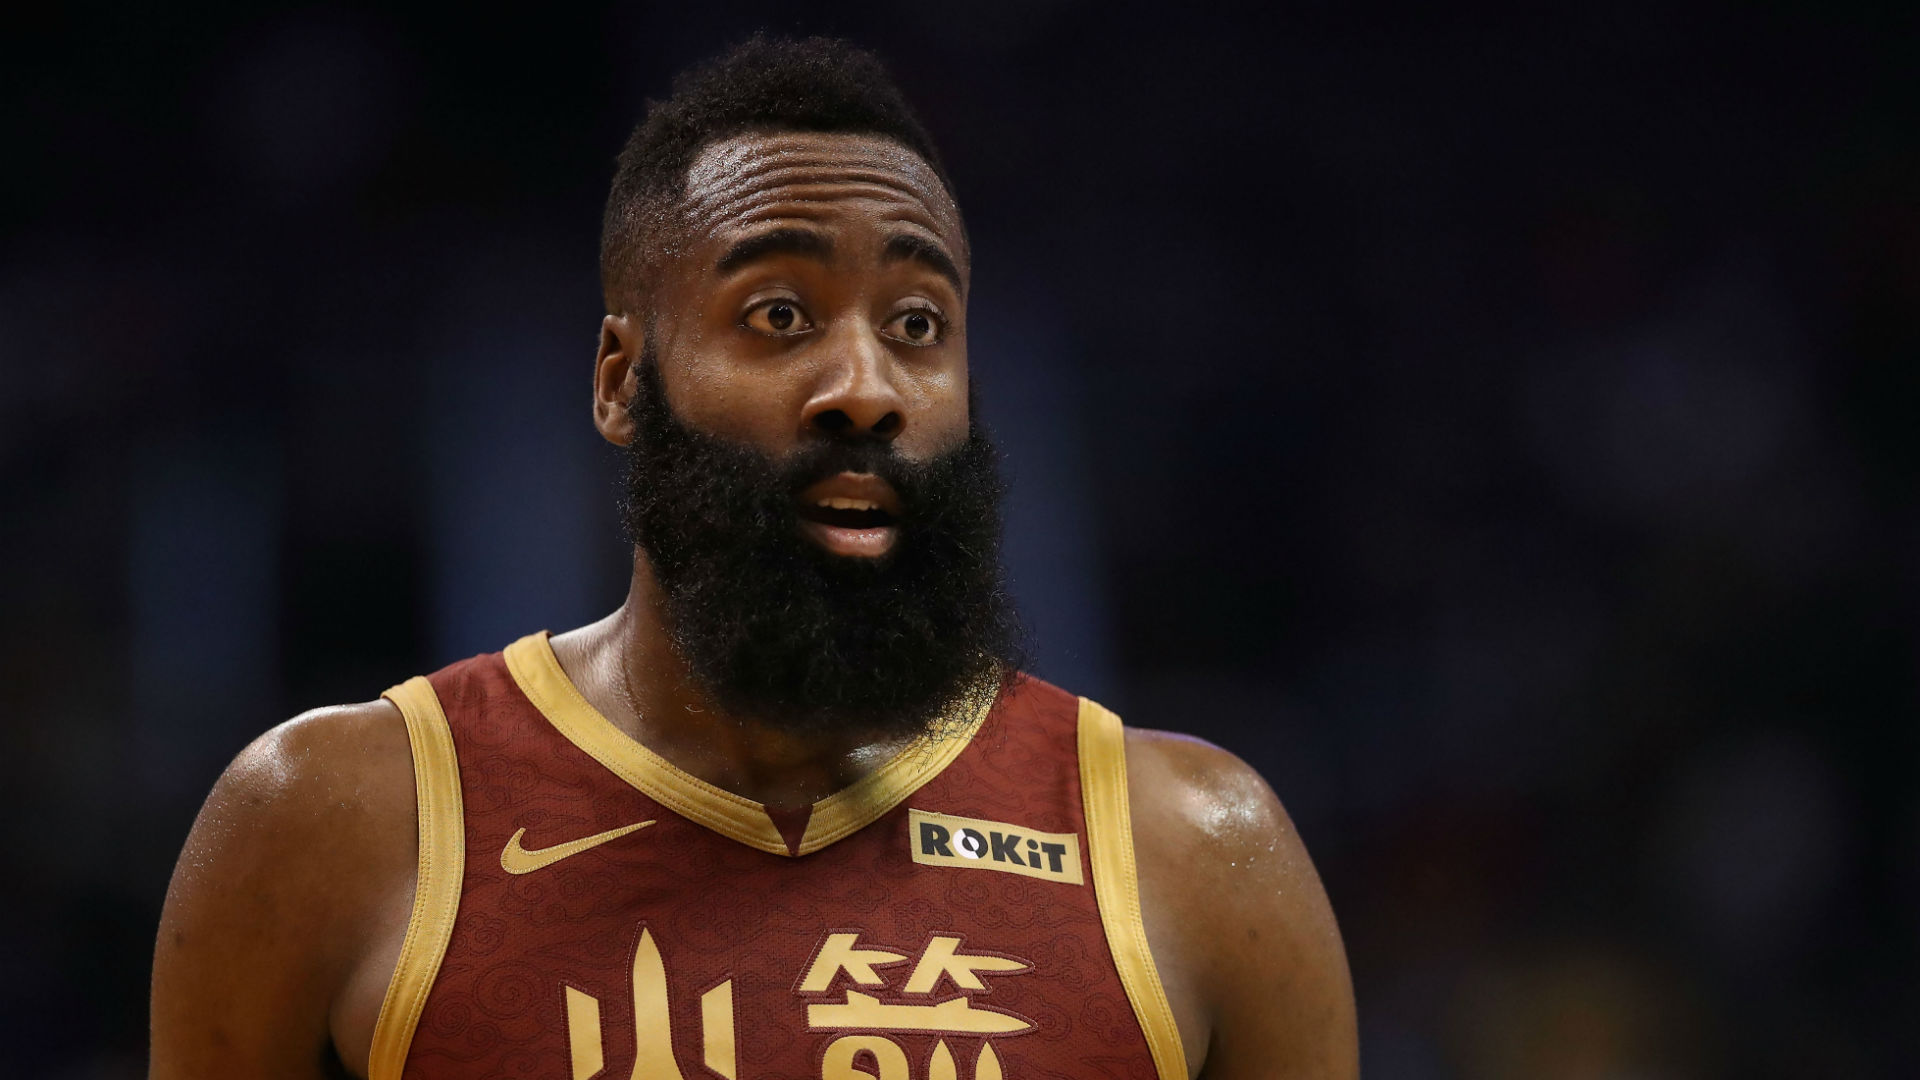 Reigning MVP James Harden continued his 30-point scoring streak, but said he was only bothered about beating the Dallas Mavericks.